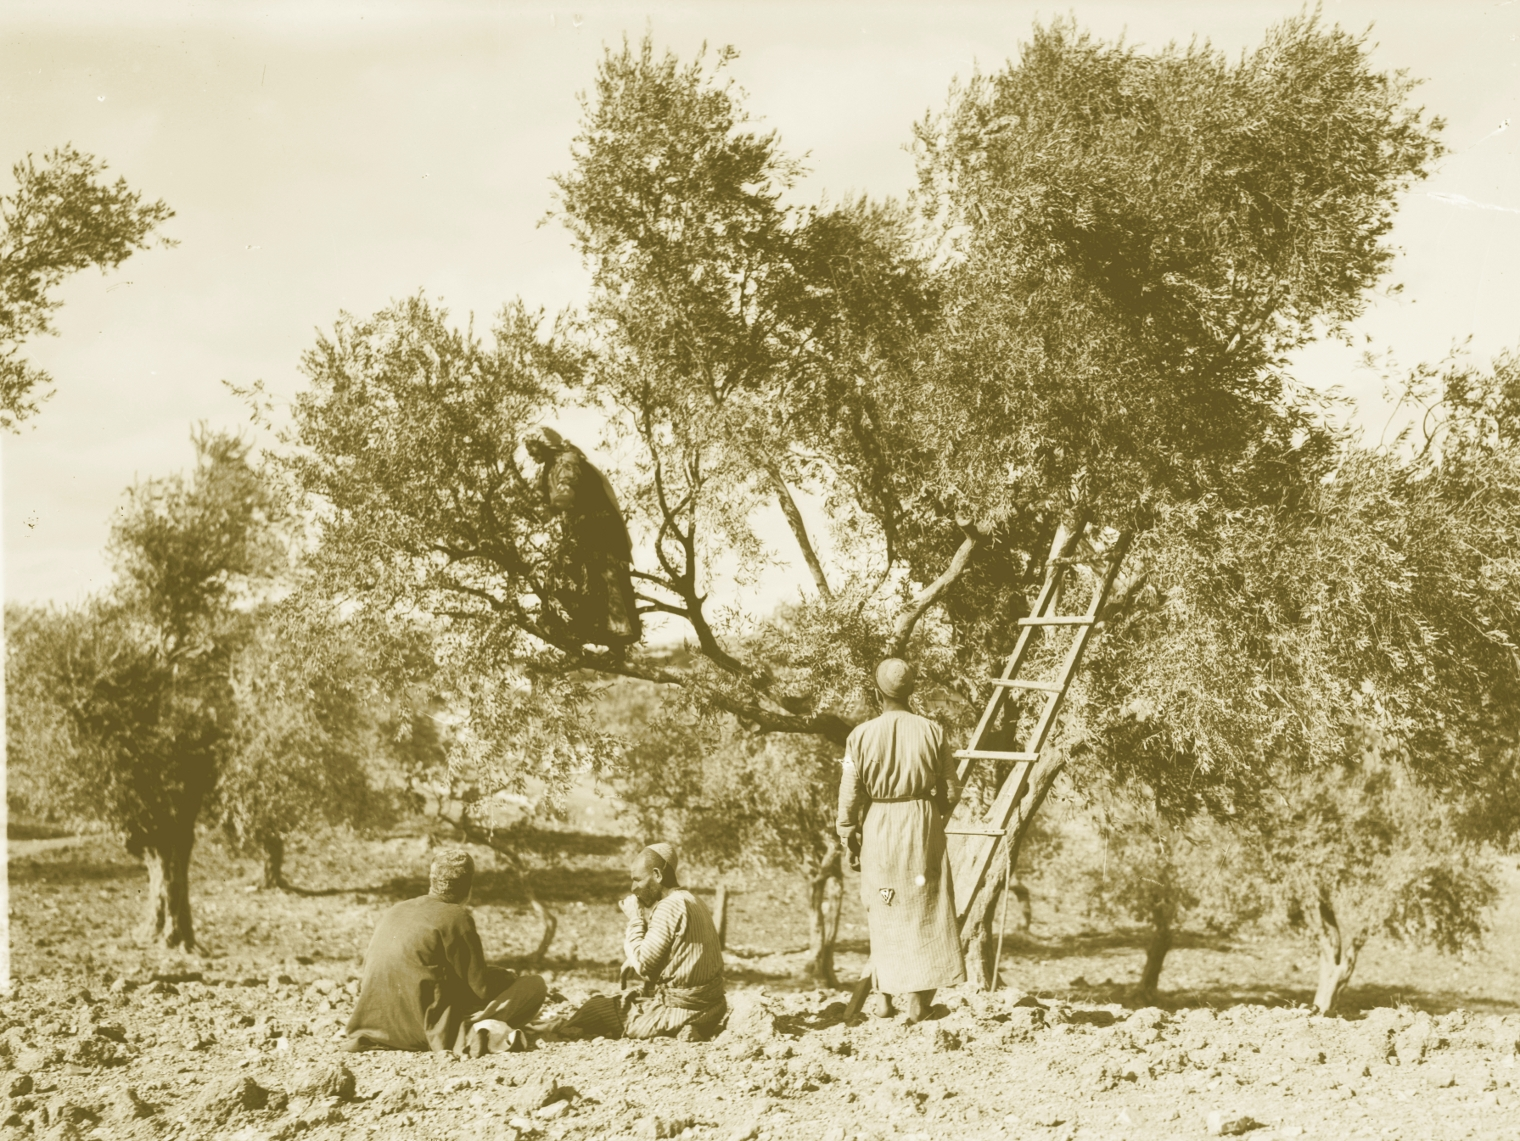 Ramallah - رام الله : RAMALLAH - Harvesting olives, early 20th c.